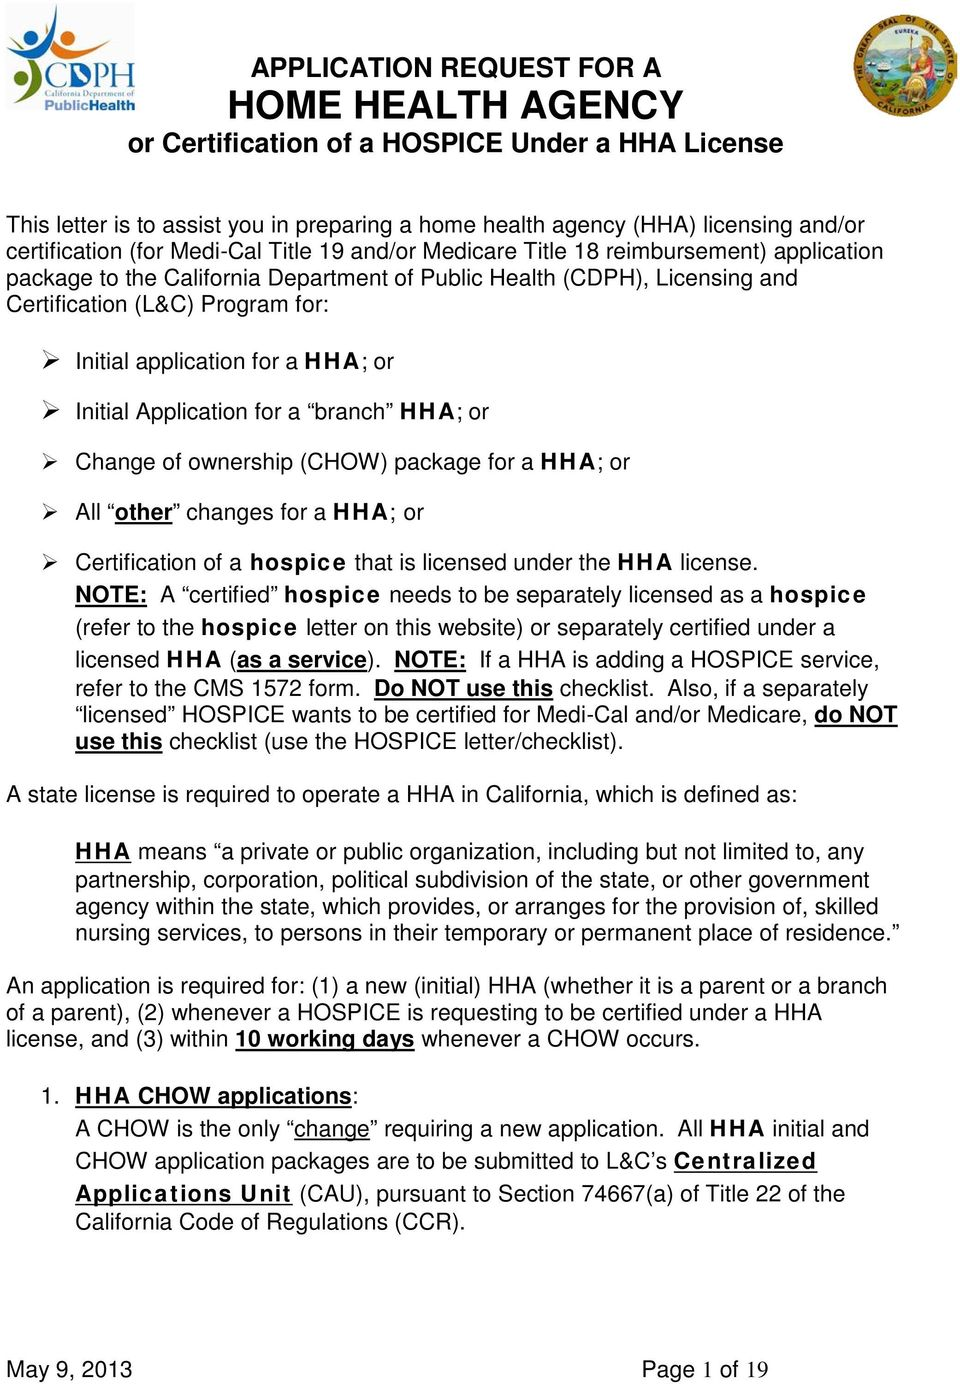 Application Request For A Home Health Agency Or Certification Of A